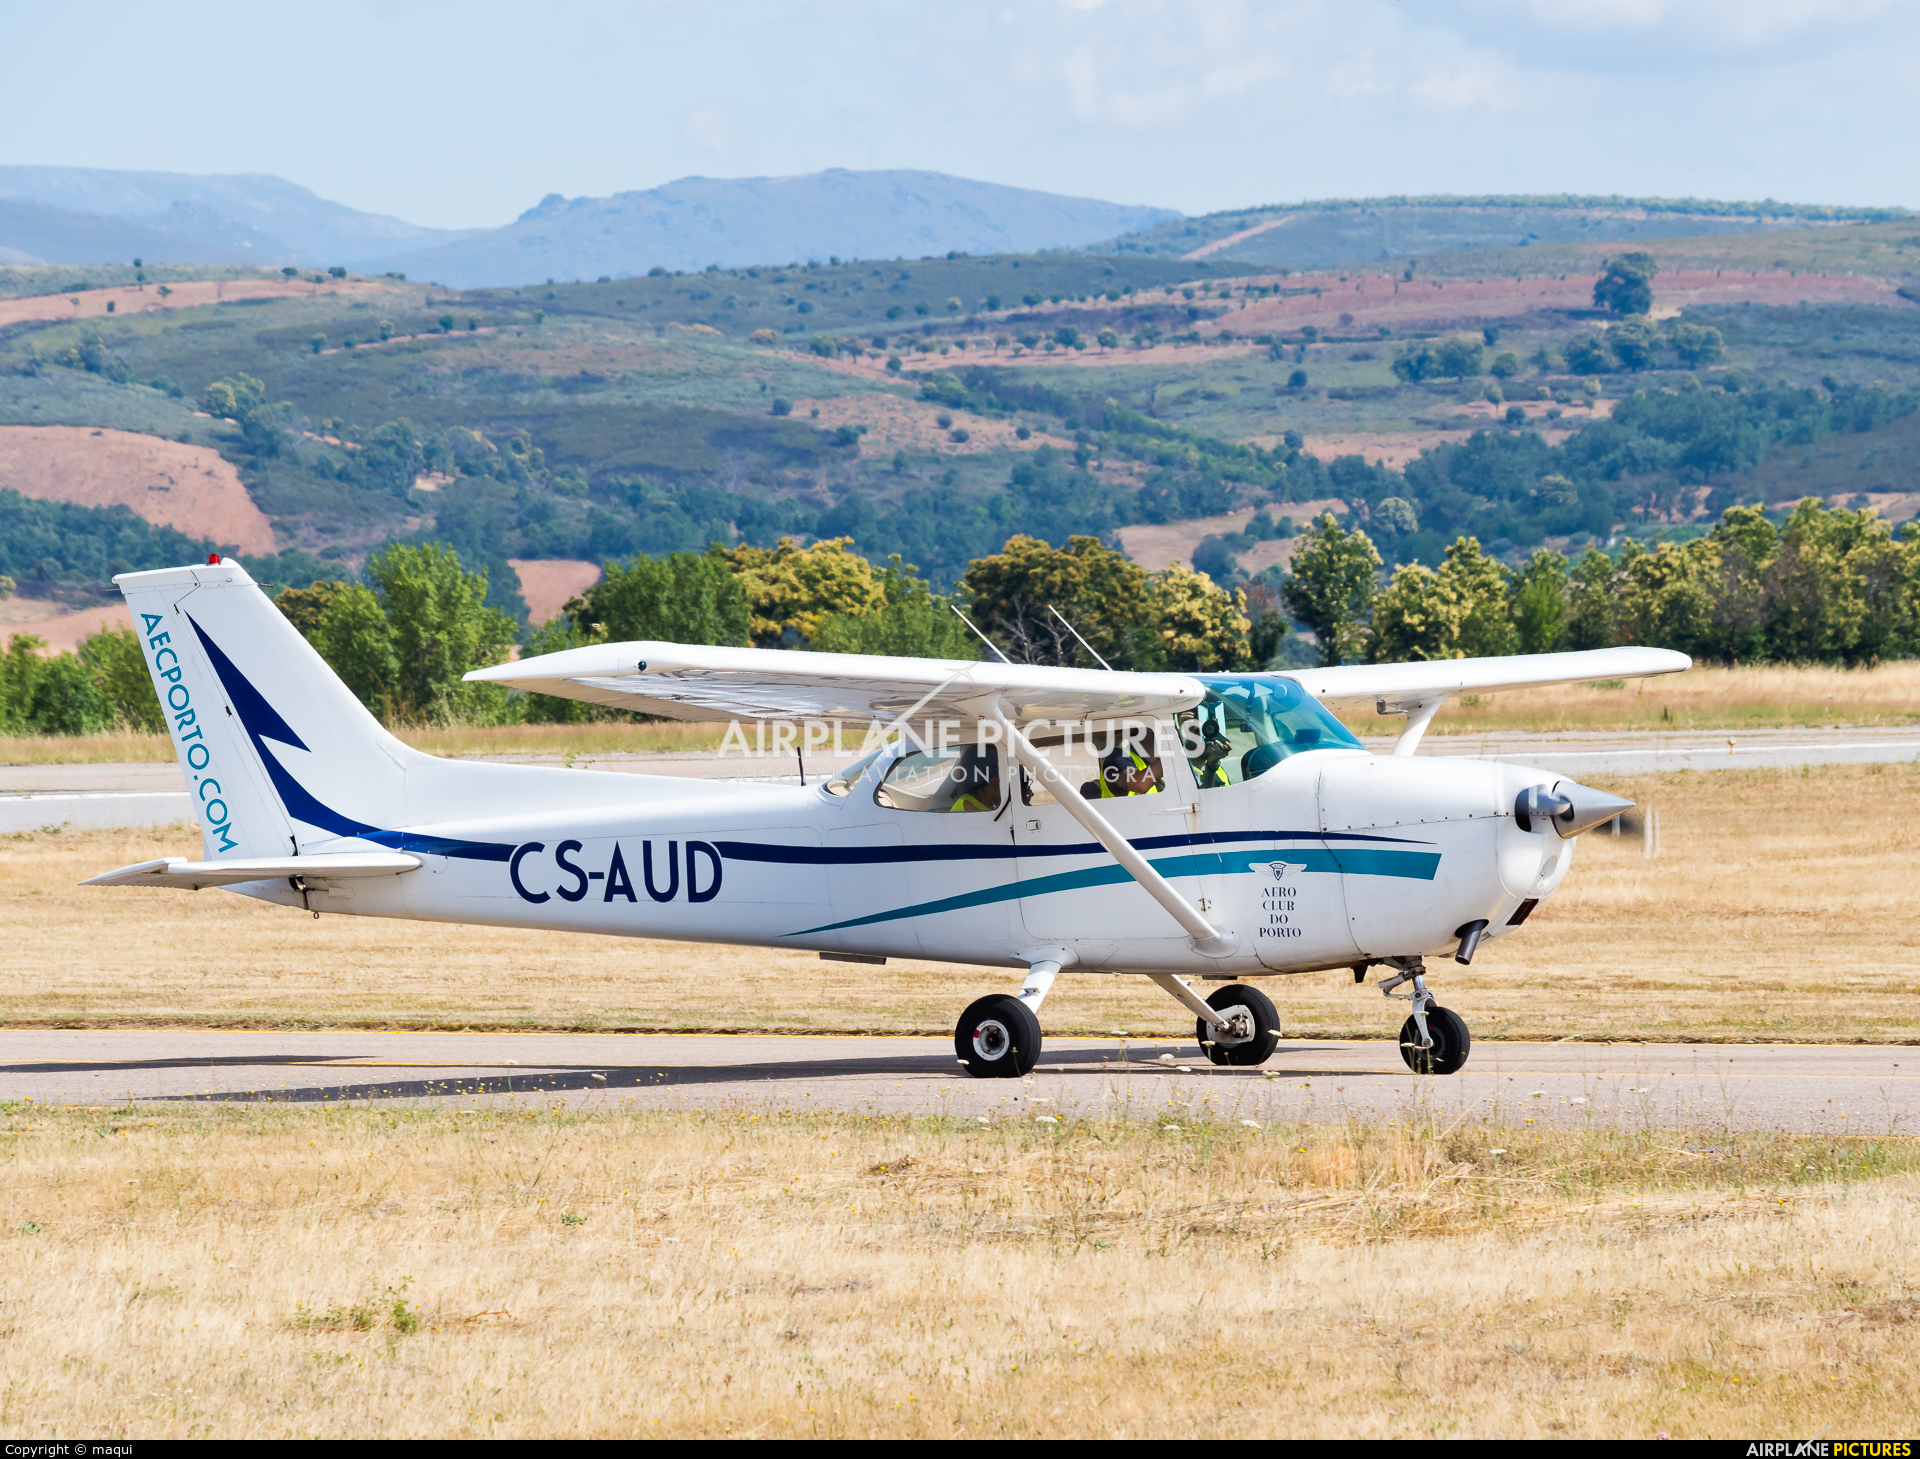 Aero Club do Porto CS-AUD aircraft at Bragança